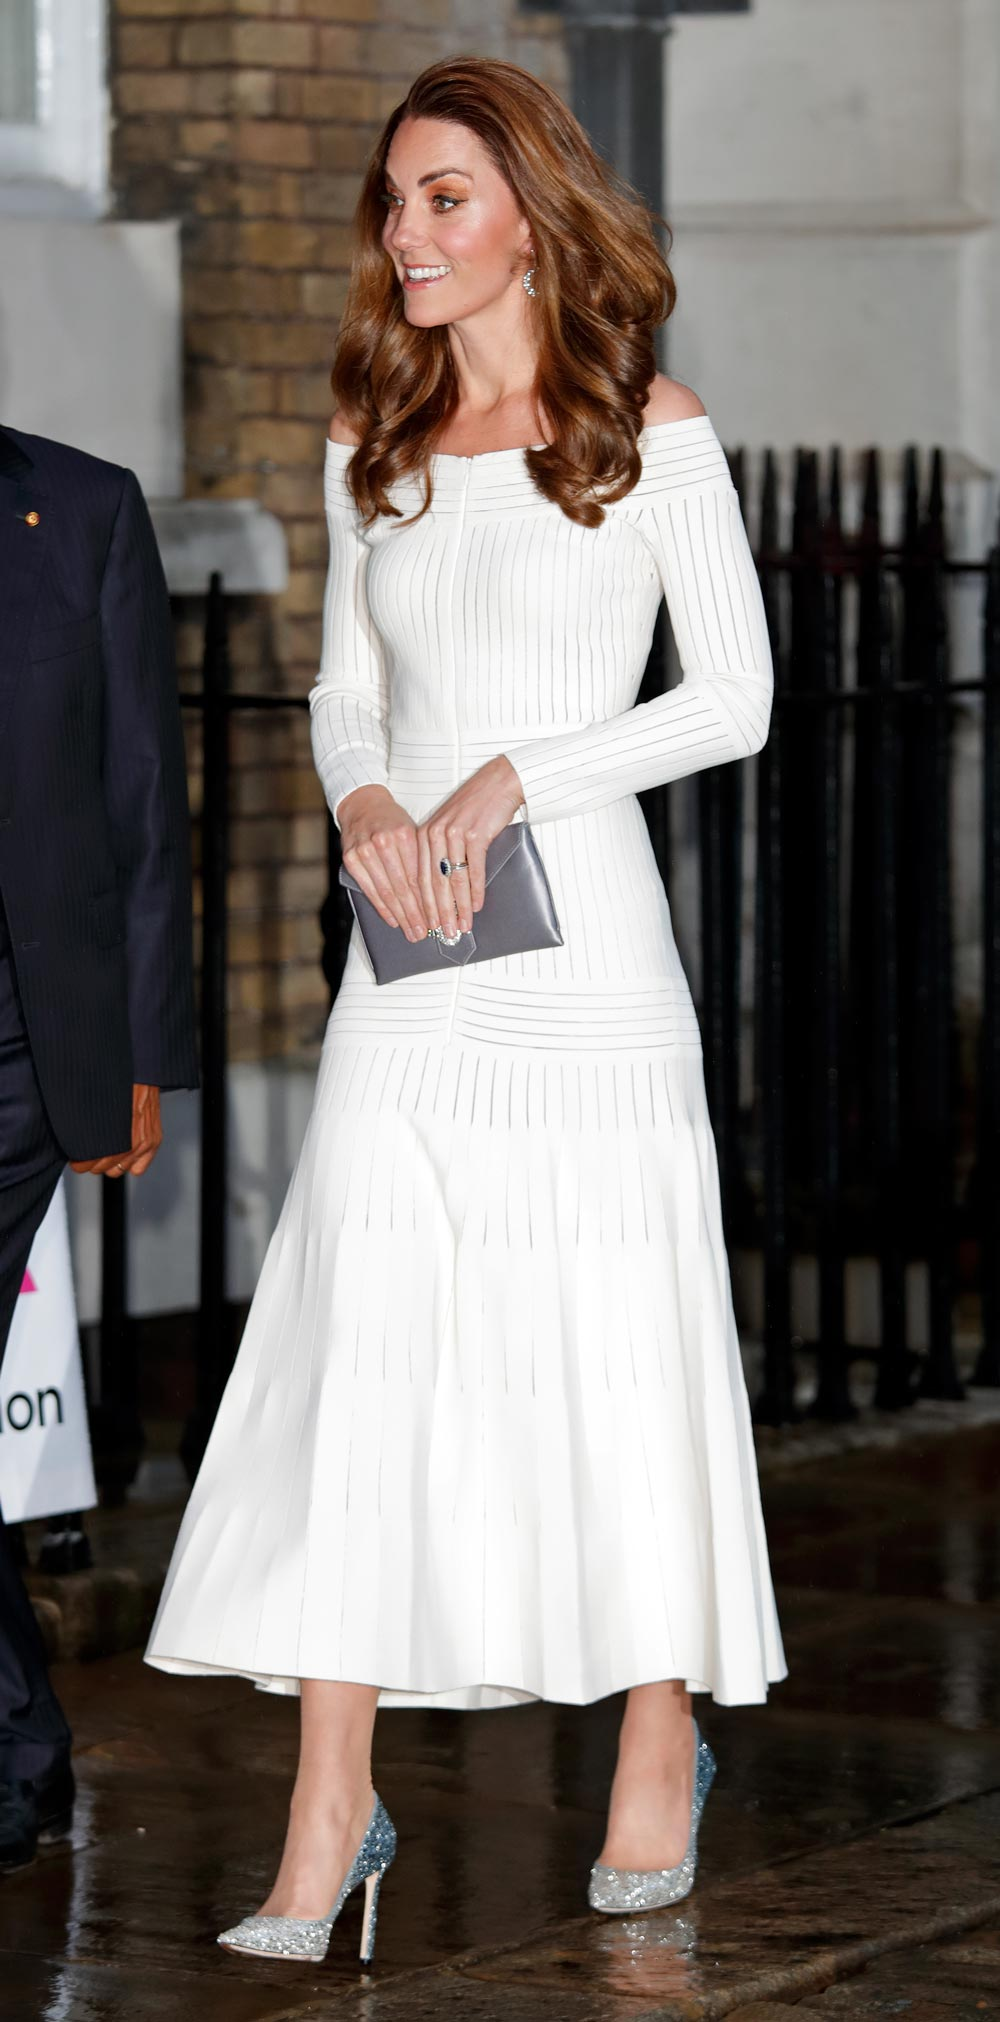 Kate Middleton S Favourite Brands The Duchess Of Cambridge S Fashion Style Analysed